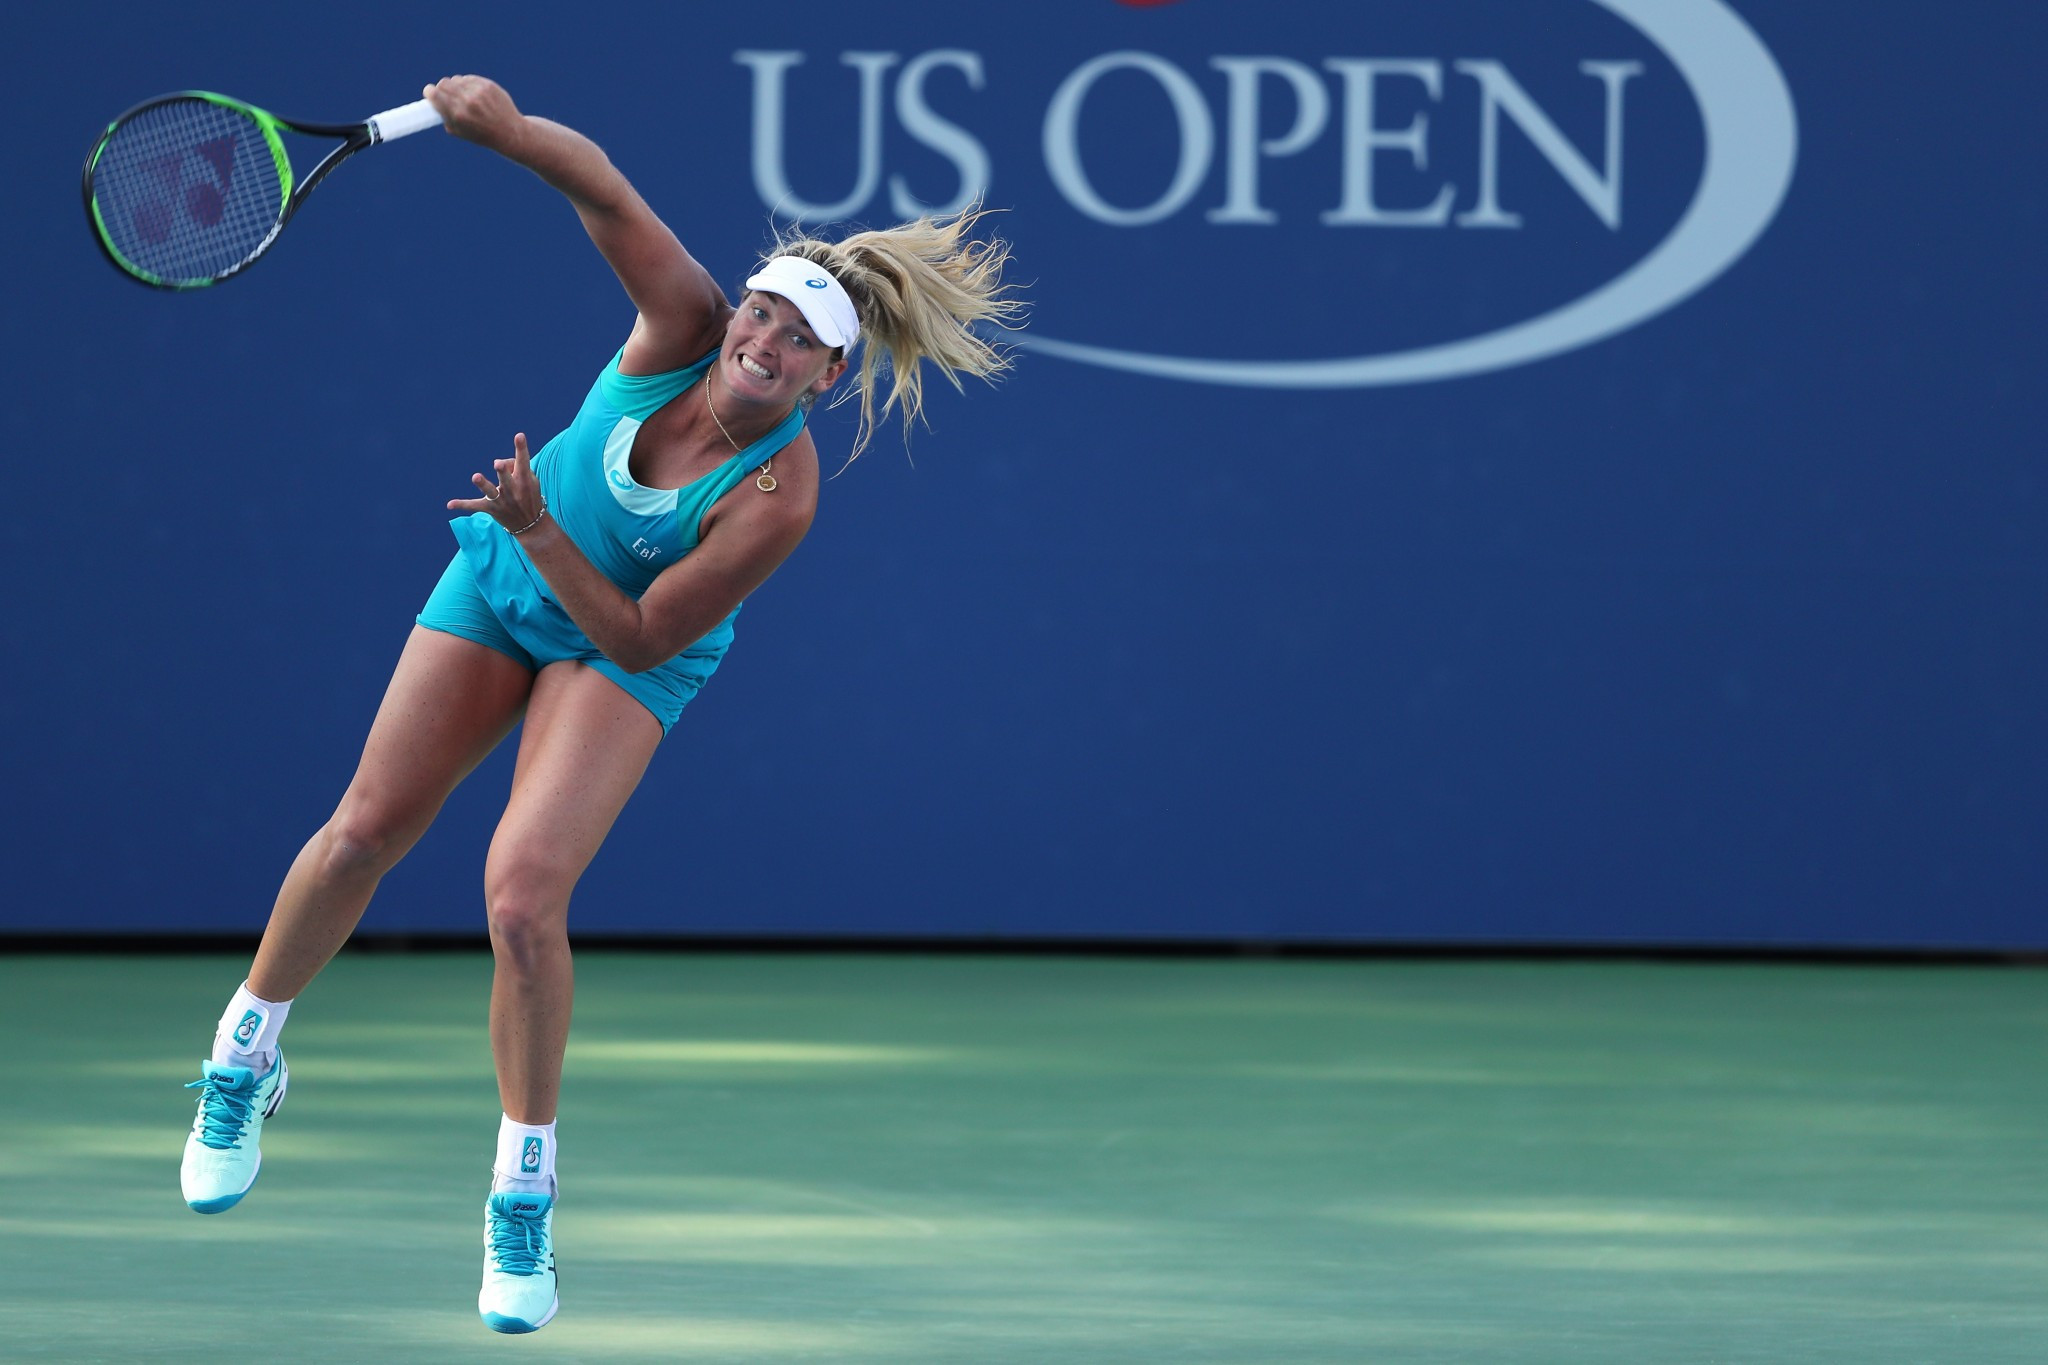 CoCo Vandeweghe spoke after a home win at the US Open ©Getty Images